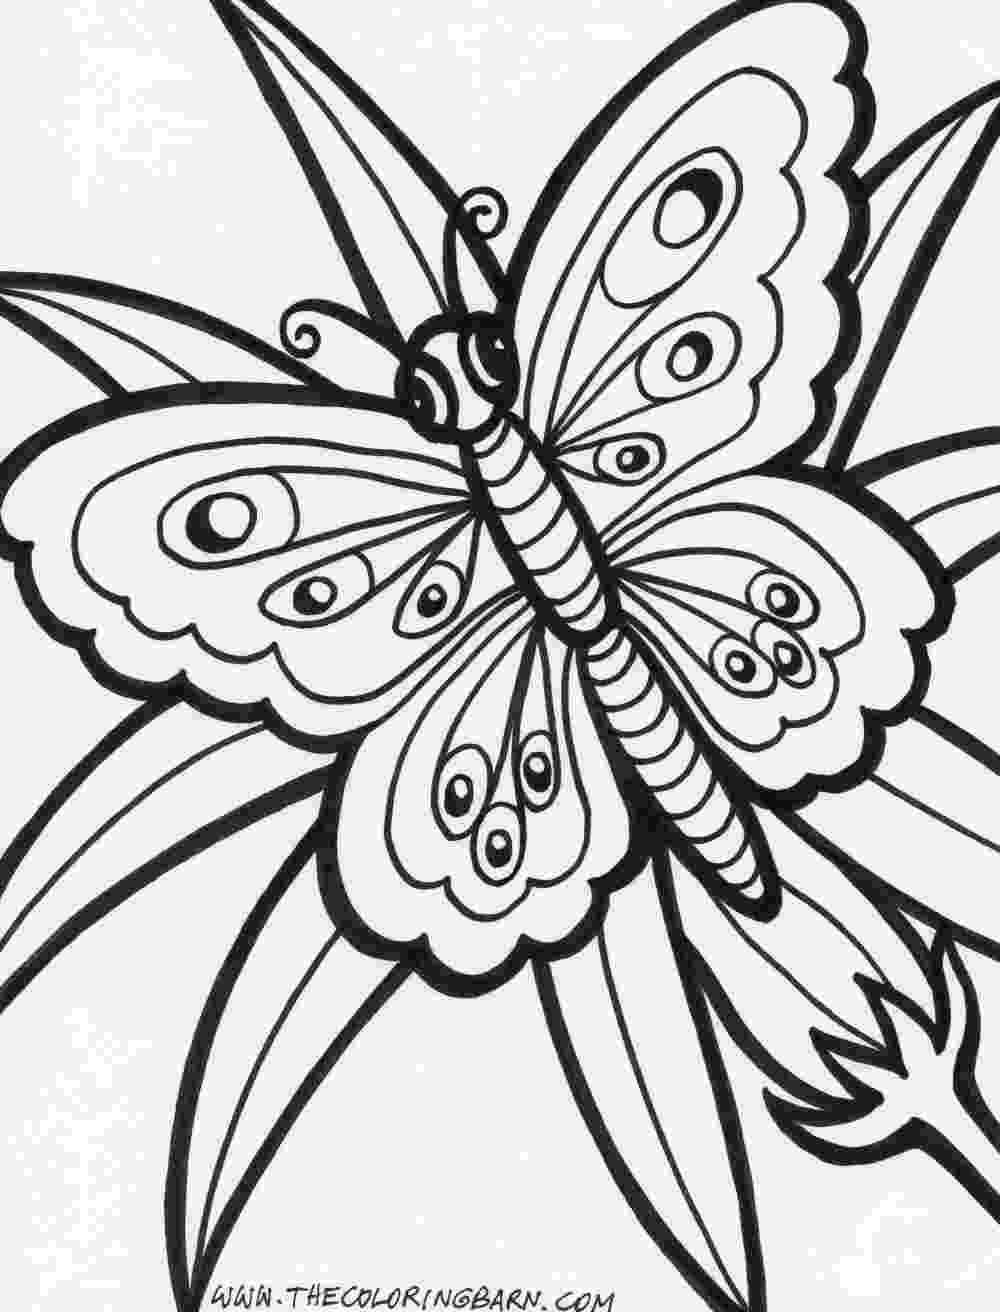 pictures of flowers to print and colour free printable hibiscus coloring pages for kids print colour and pictures to flowers of